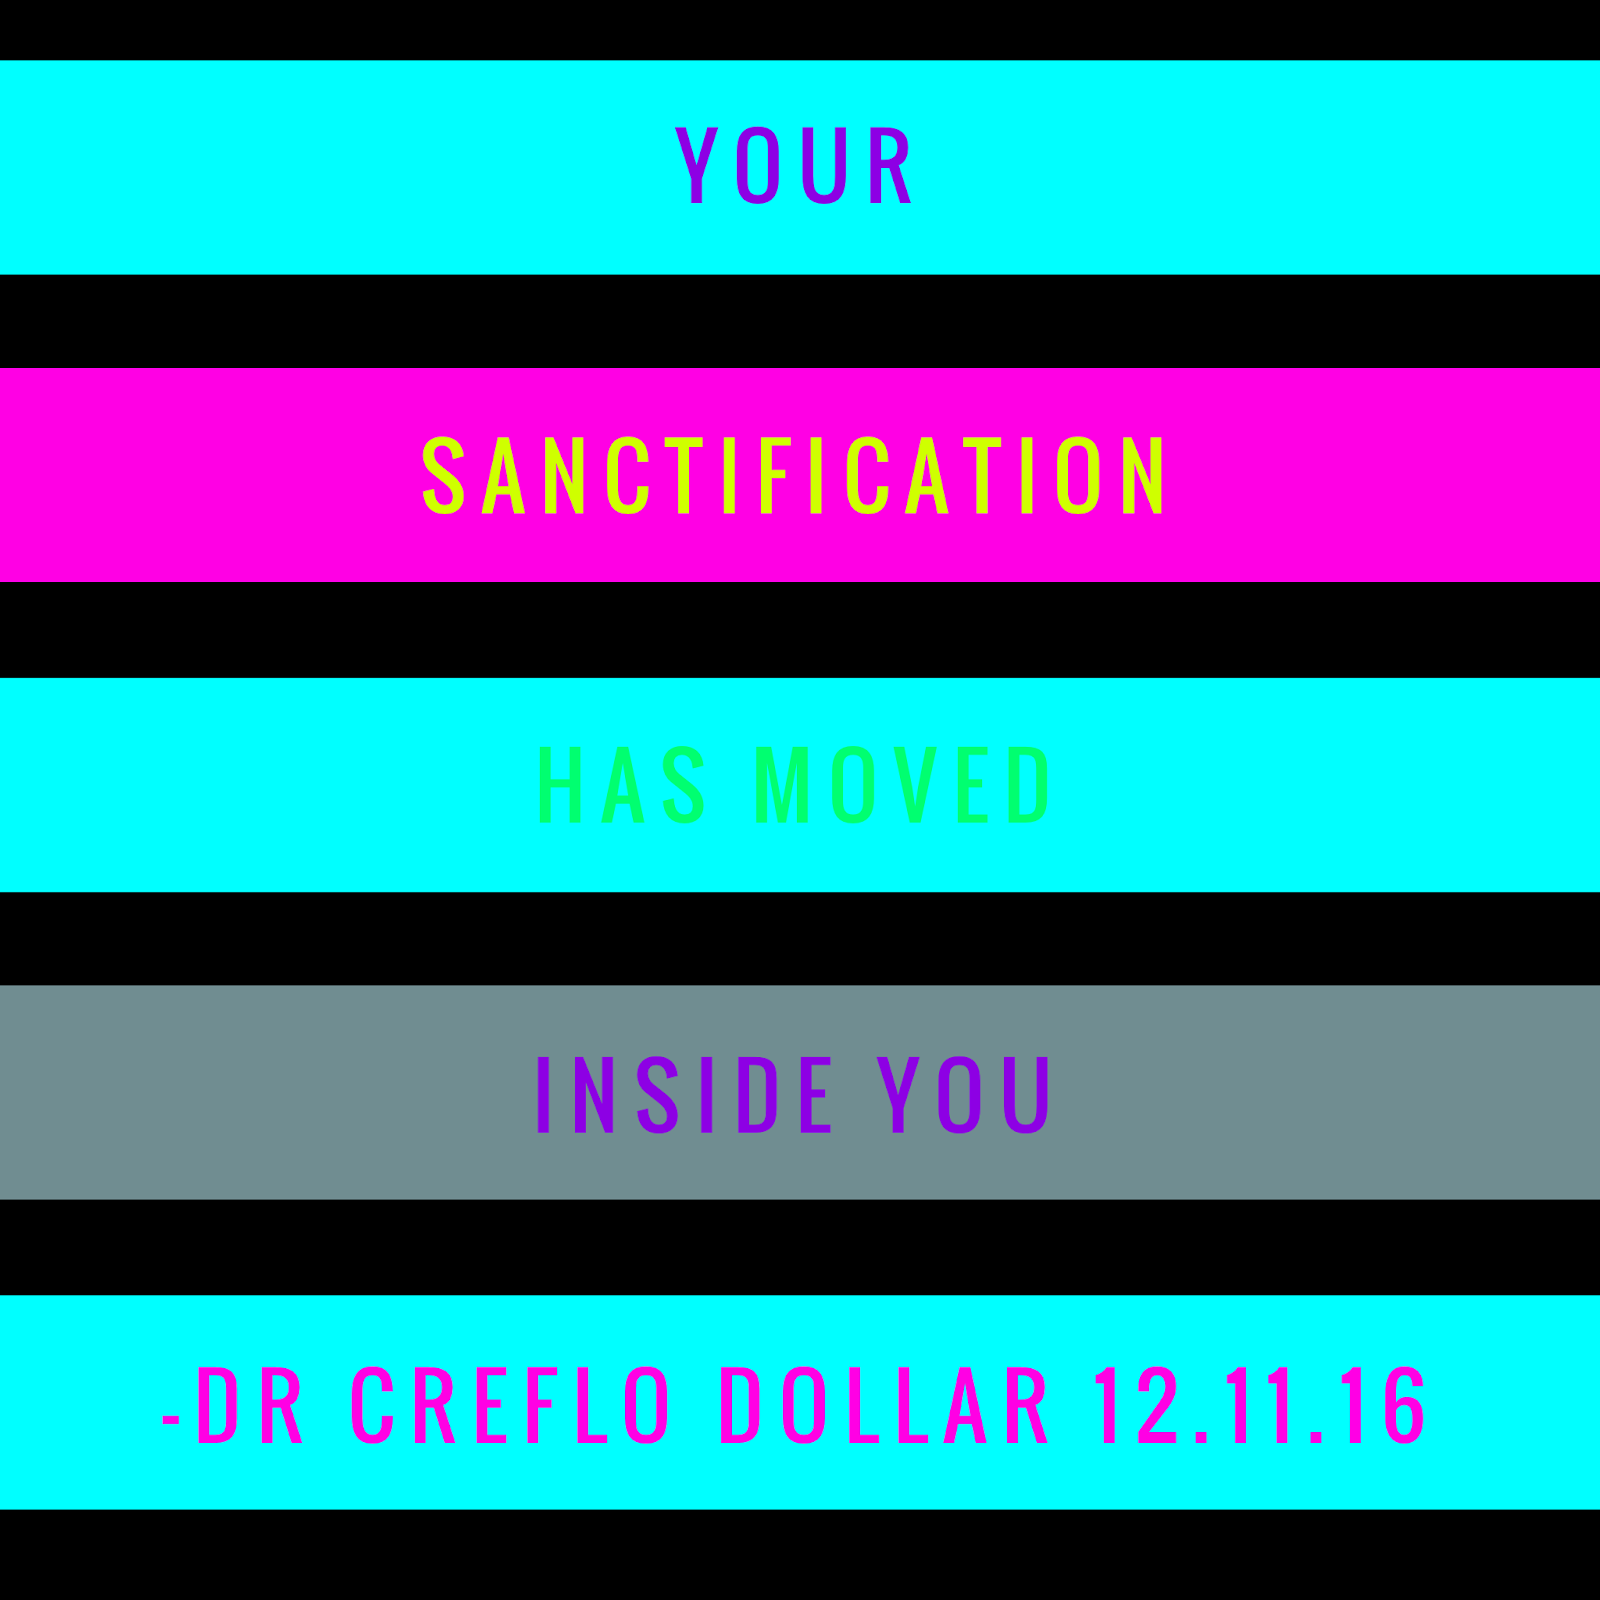 Your sanctification has moved inside you!